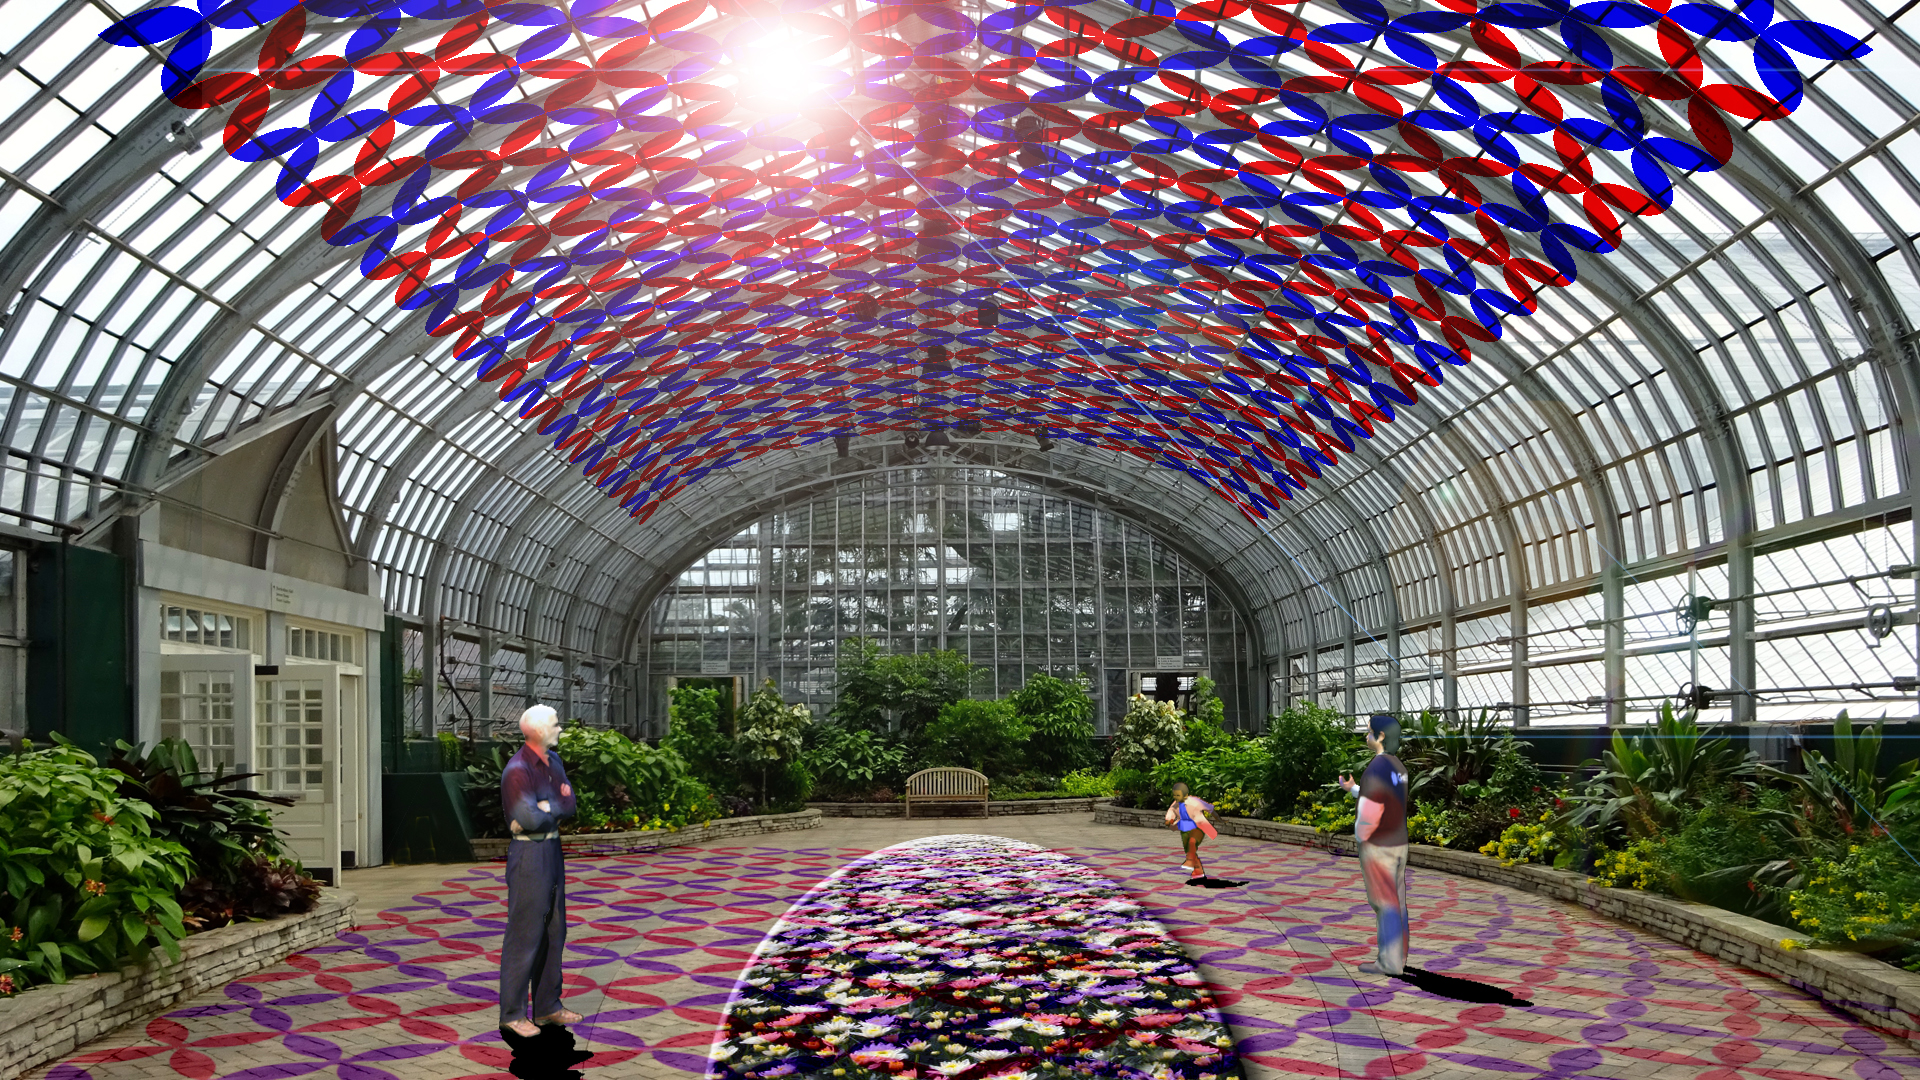 Florescence: A sculptural canopy of red and blue petals that will cast colorful shadows throughout the Show House by day and by night. The Show House color panel installation will reveal the spectrum of light necessary for plant growth.